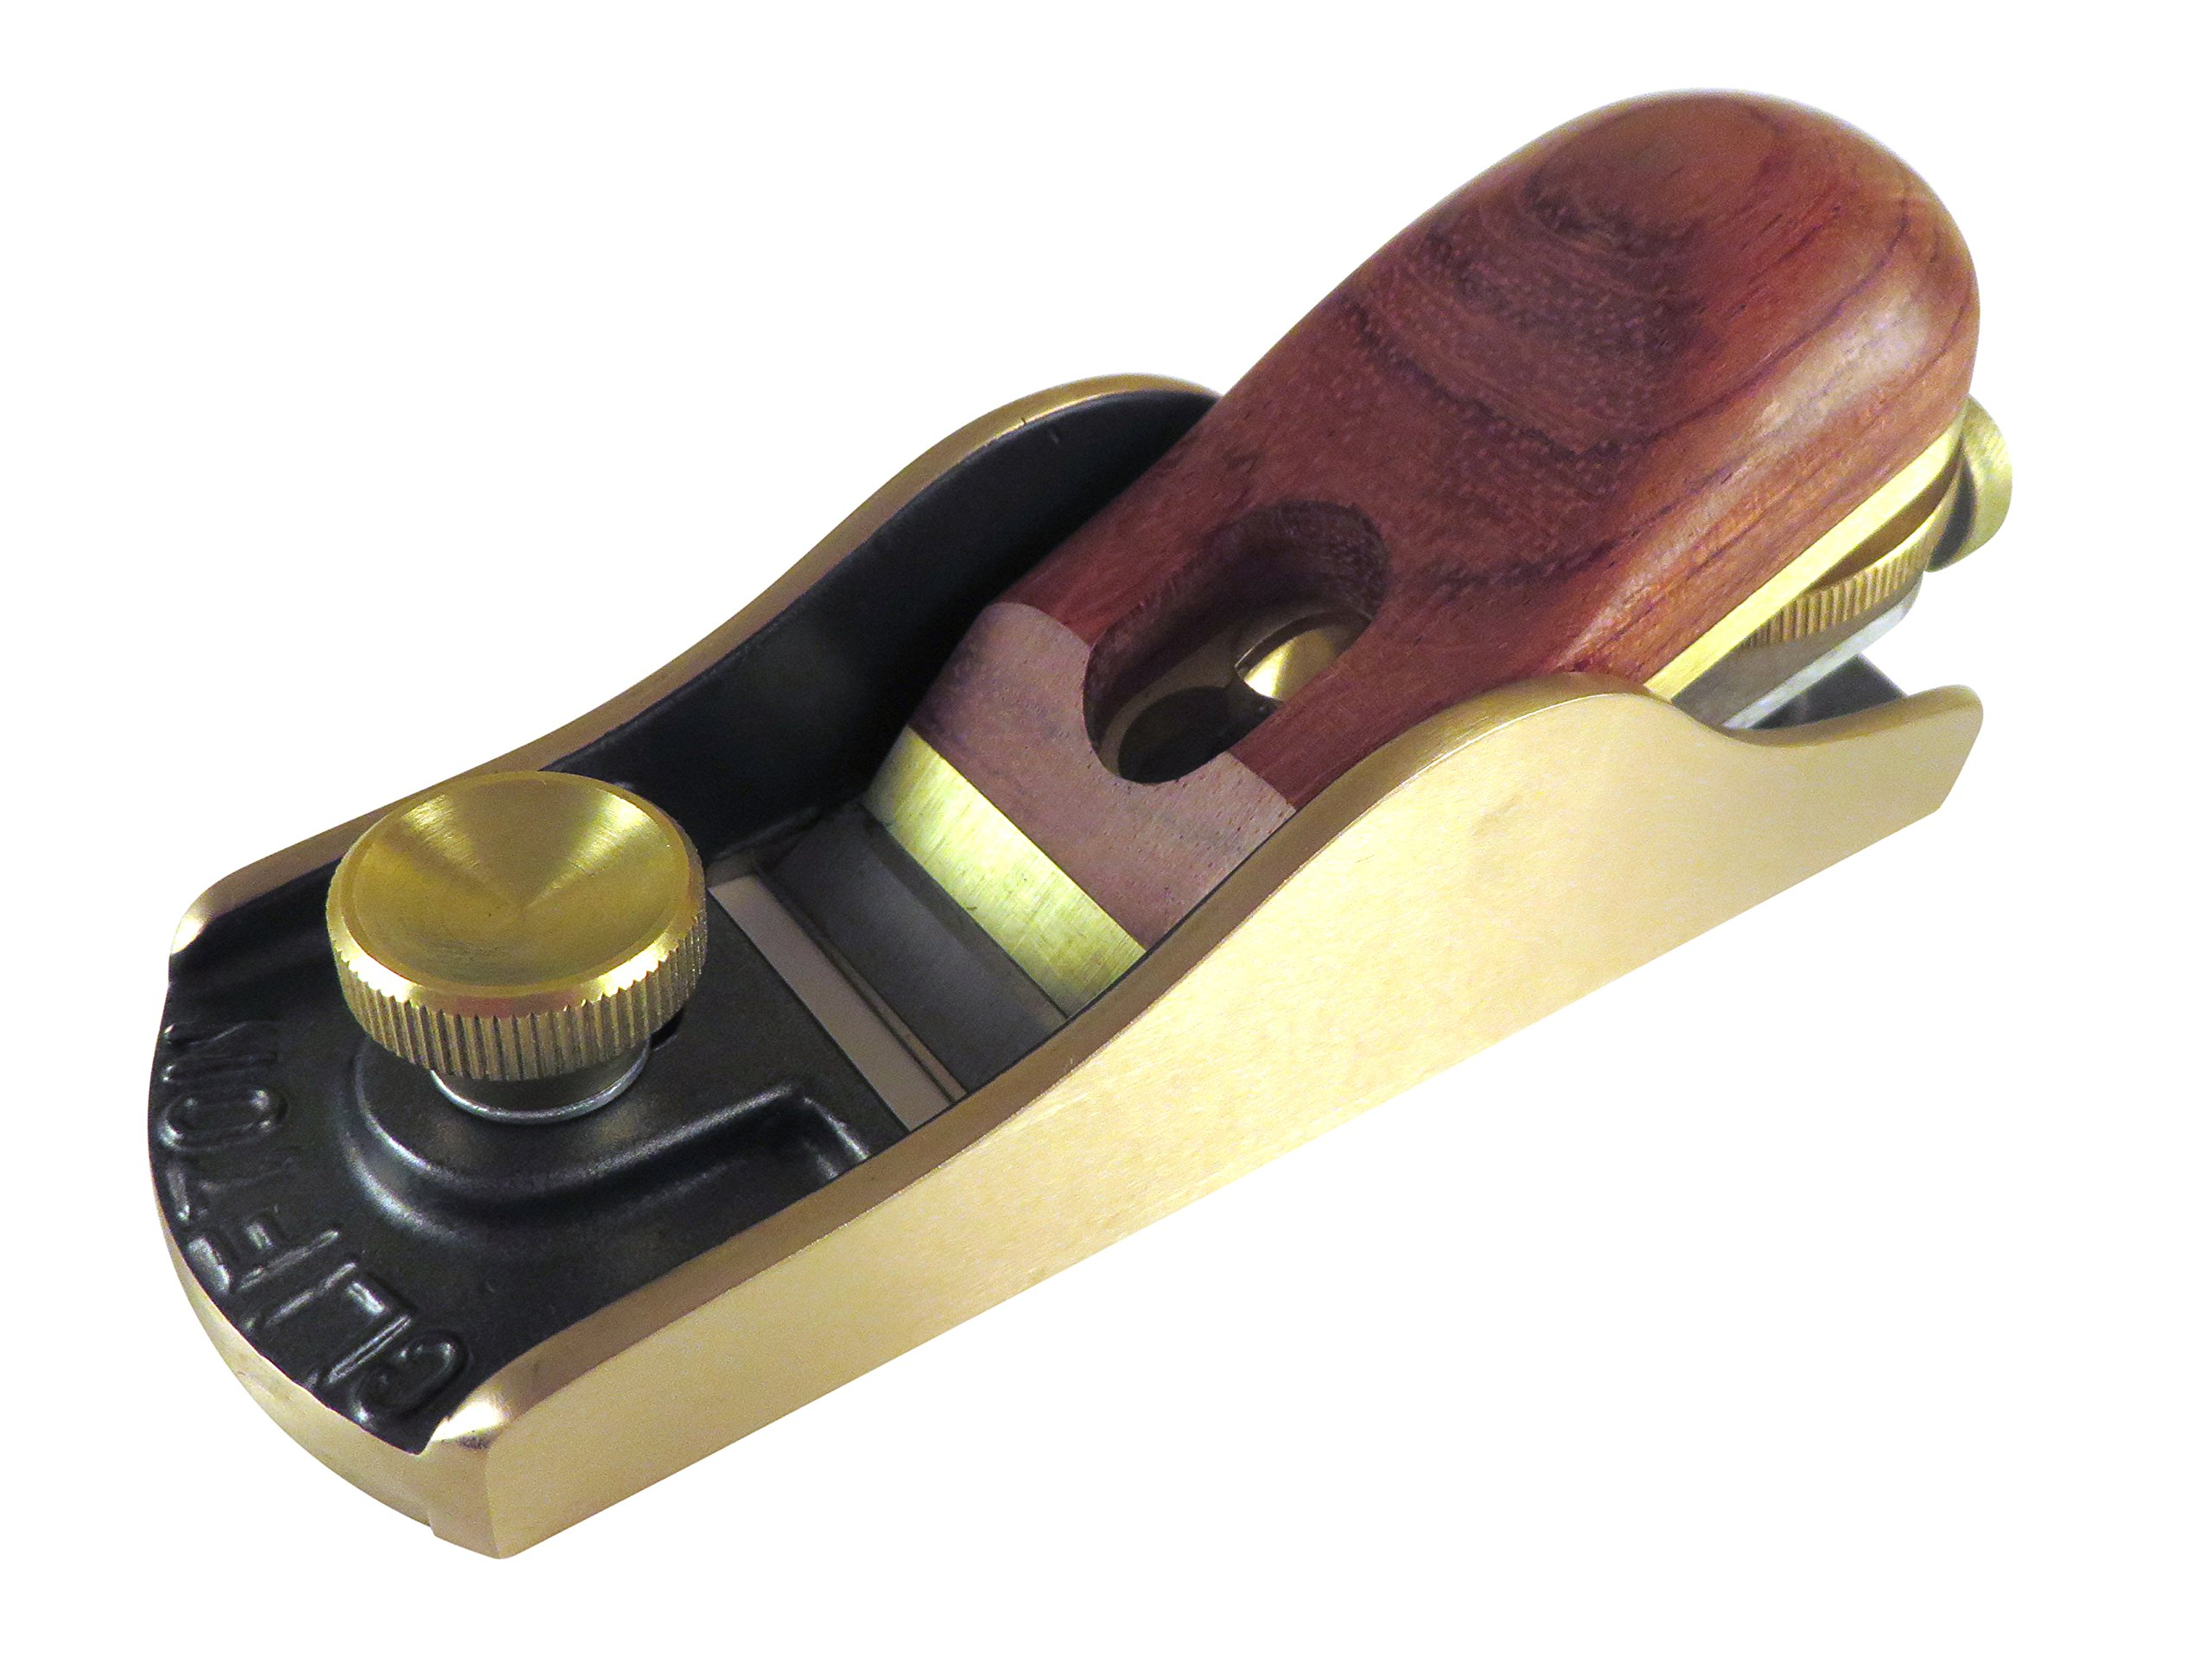 Clifton Block Plane Adjustable Mouth Bronze Body Bubinga Handle Cryogenically Treated 0.125'' (3mm) Thick 01 Steel Blade RC 60-62 by Clifton